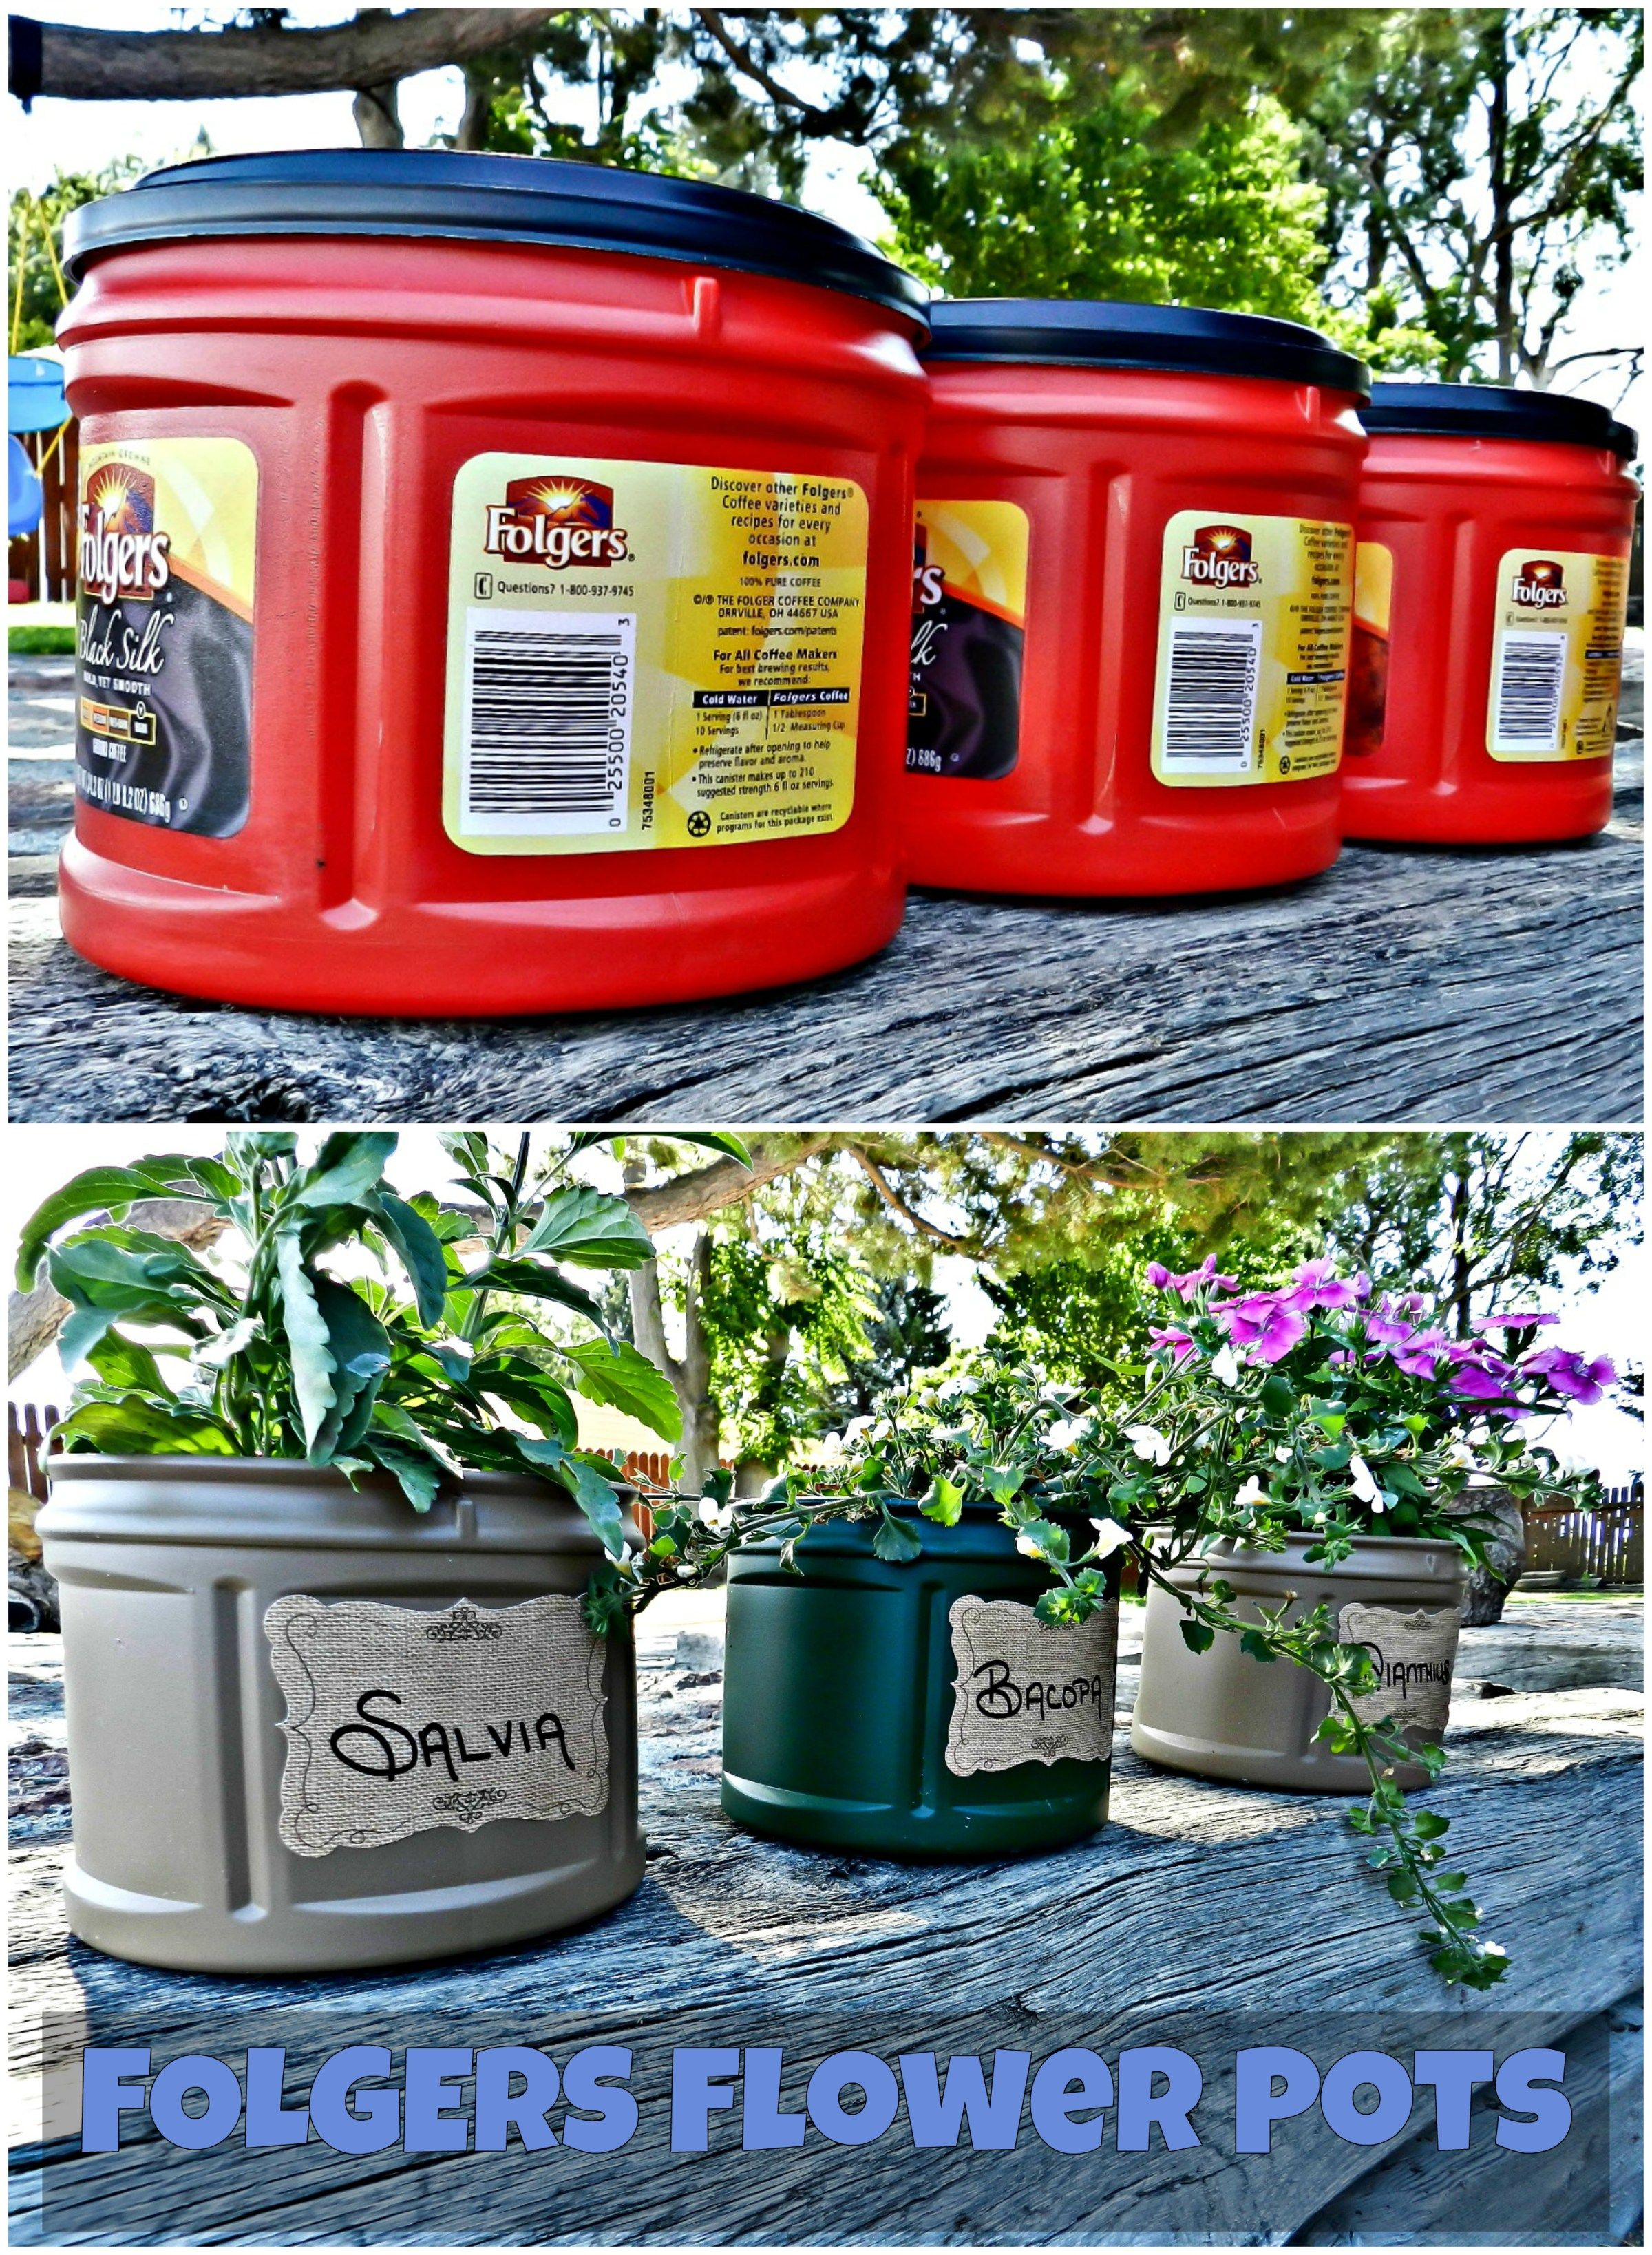 How To Turn An Old Coffee Can Into A Flower Pot With Images